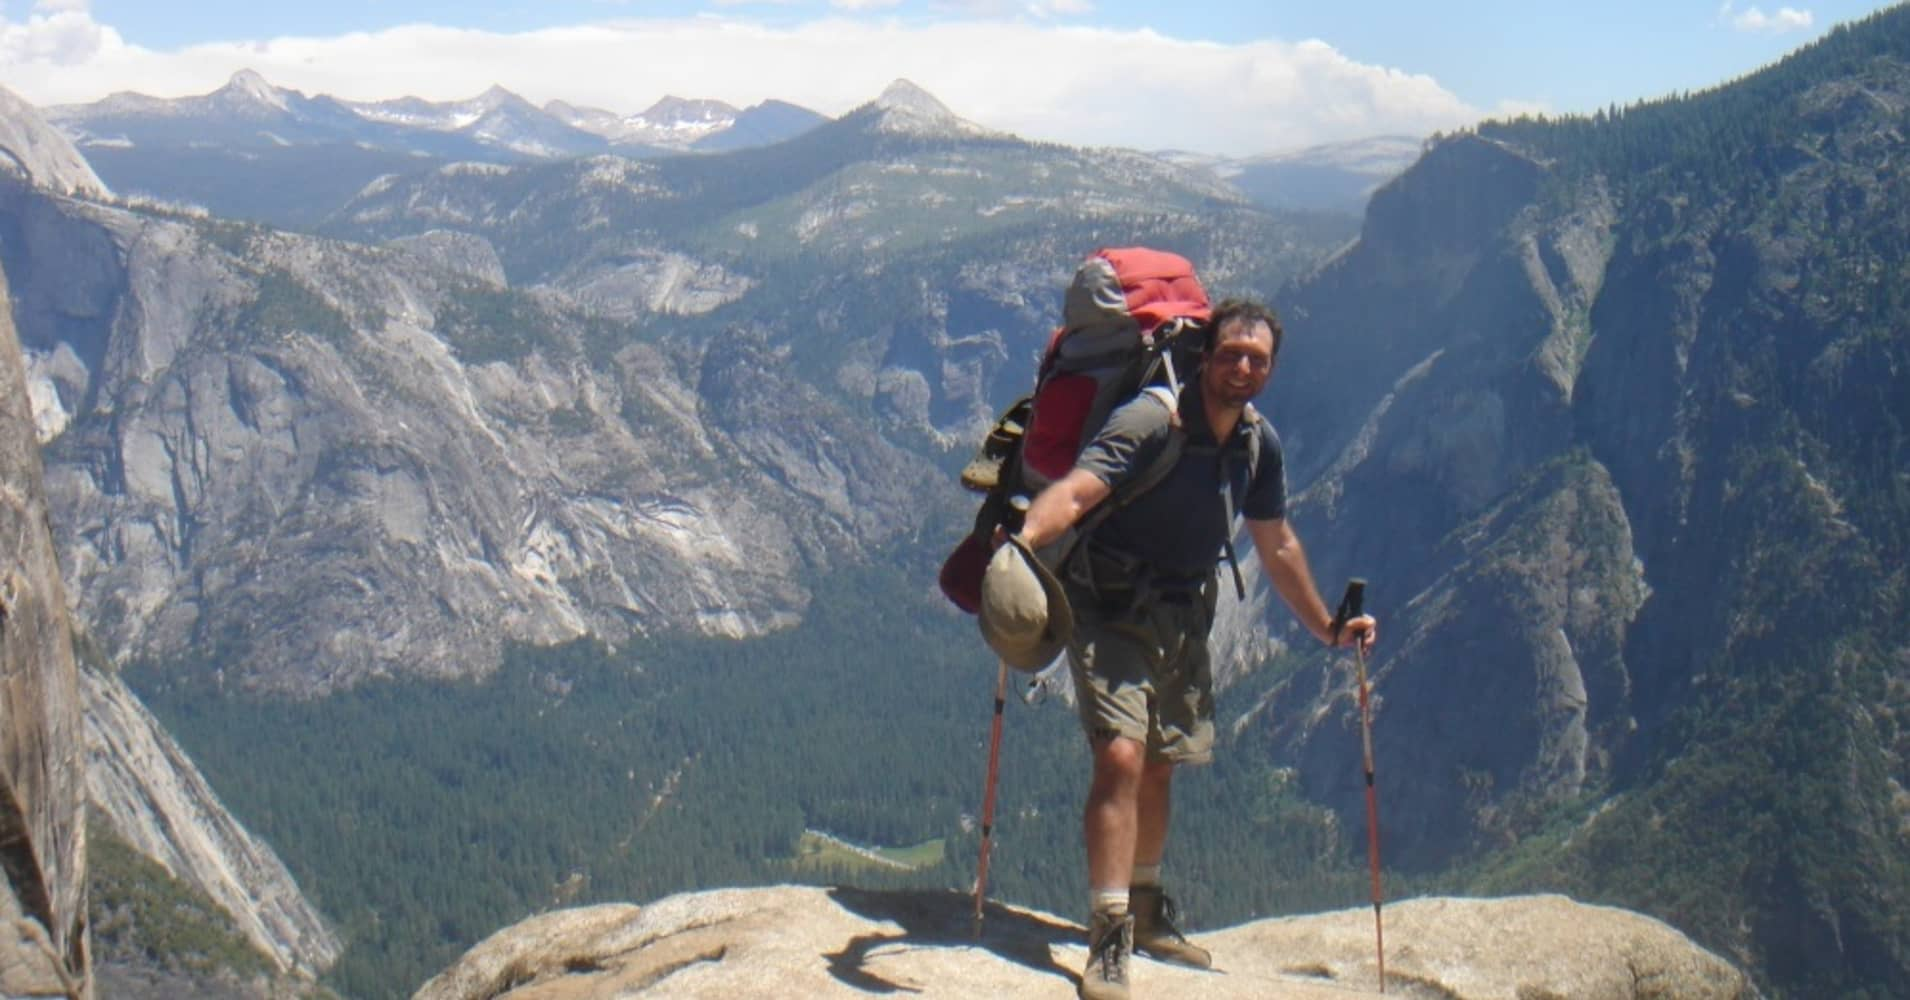 Steve Silberberg is the founder of Fitpacking Weight Loss Backpacking Adventures.